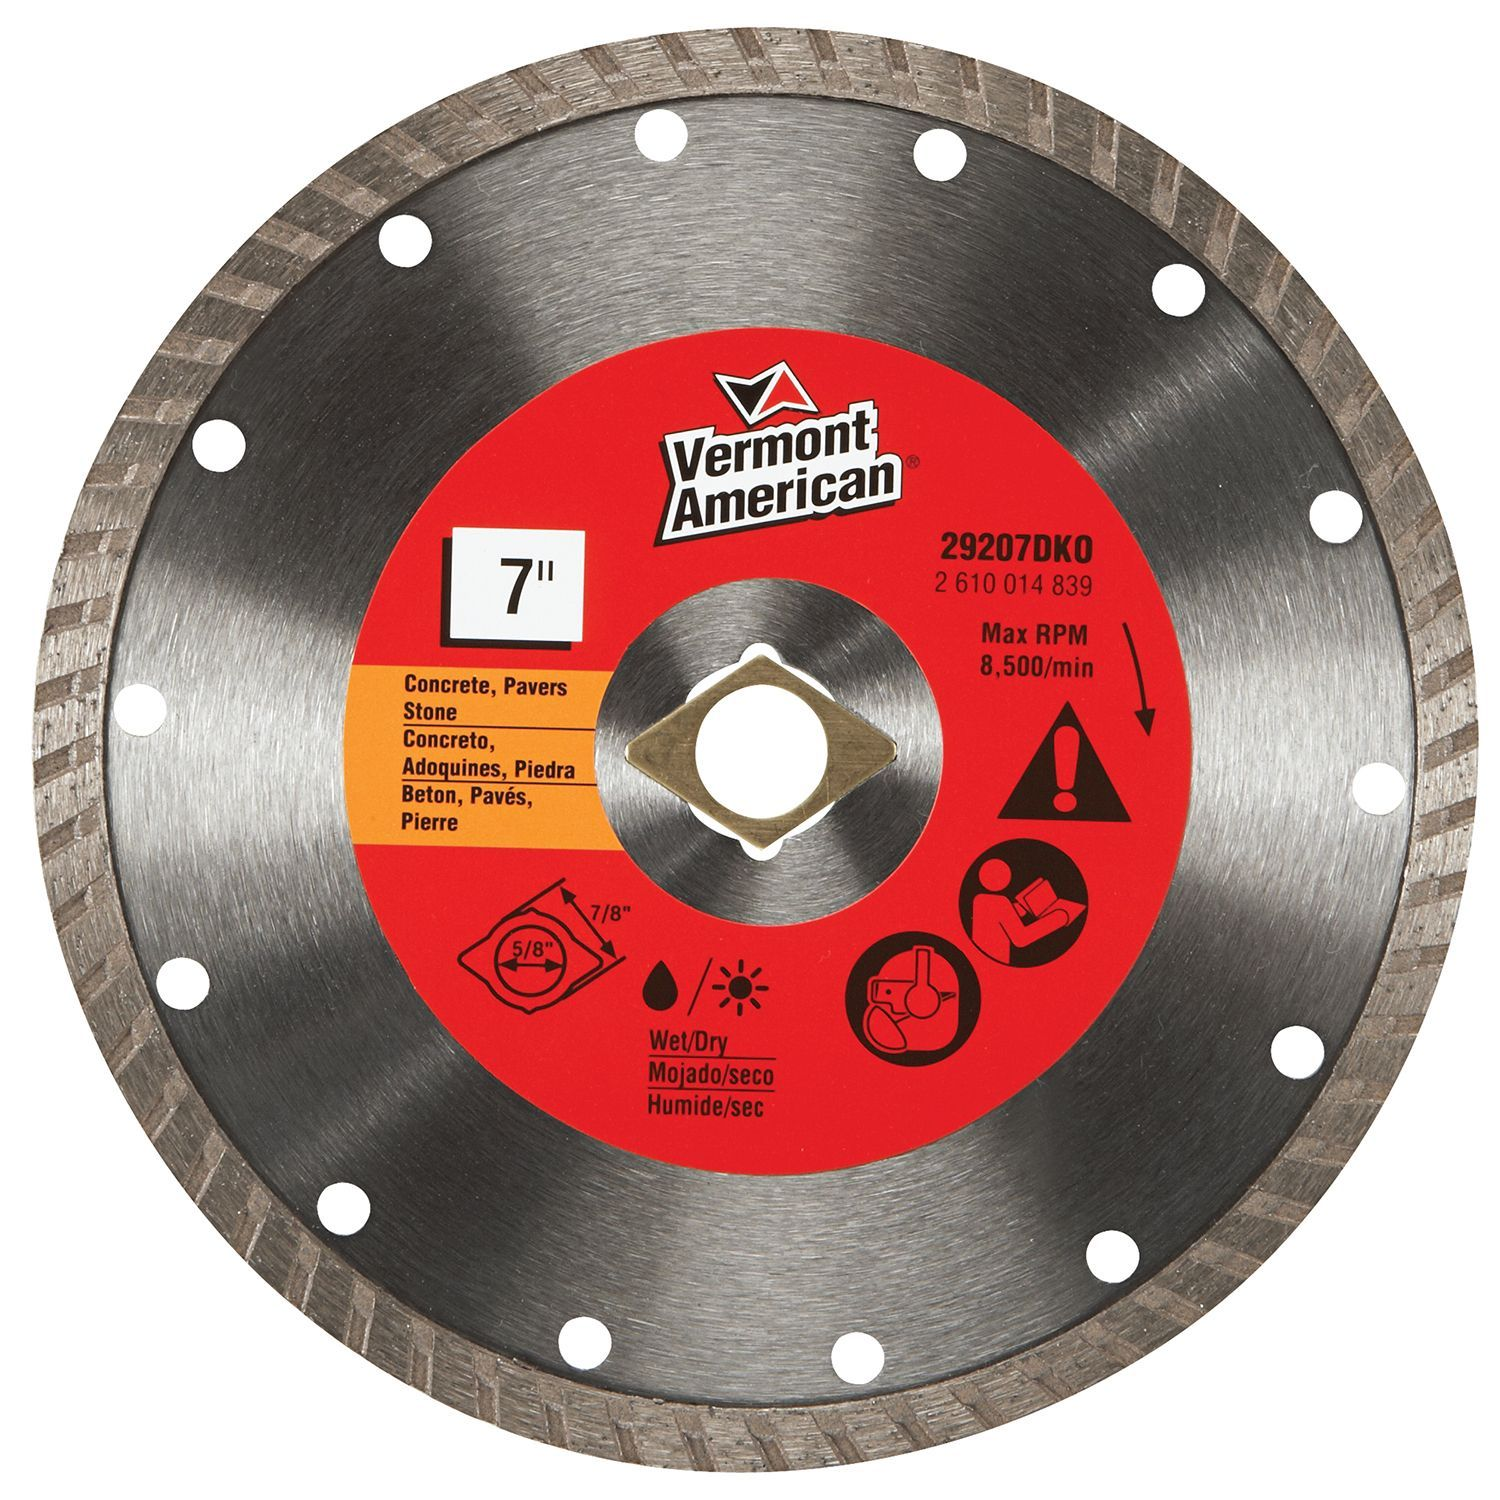 Vermont american 29207dko 7 diamond blade products pinterest vermont american 29207dko 7 diamond blade table saw greentooth Images